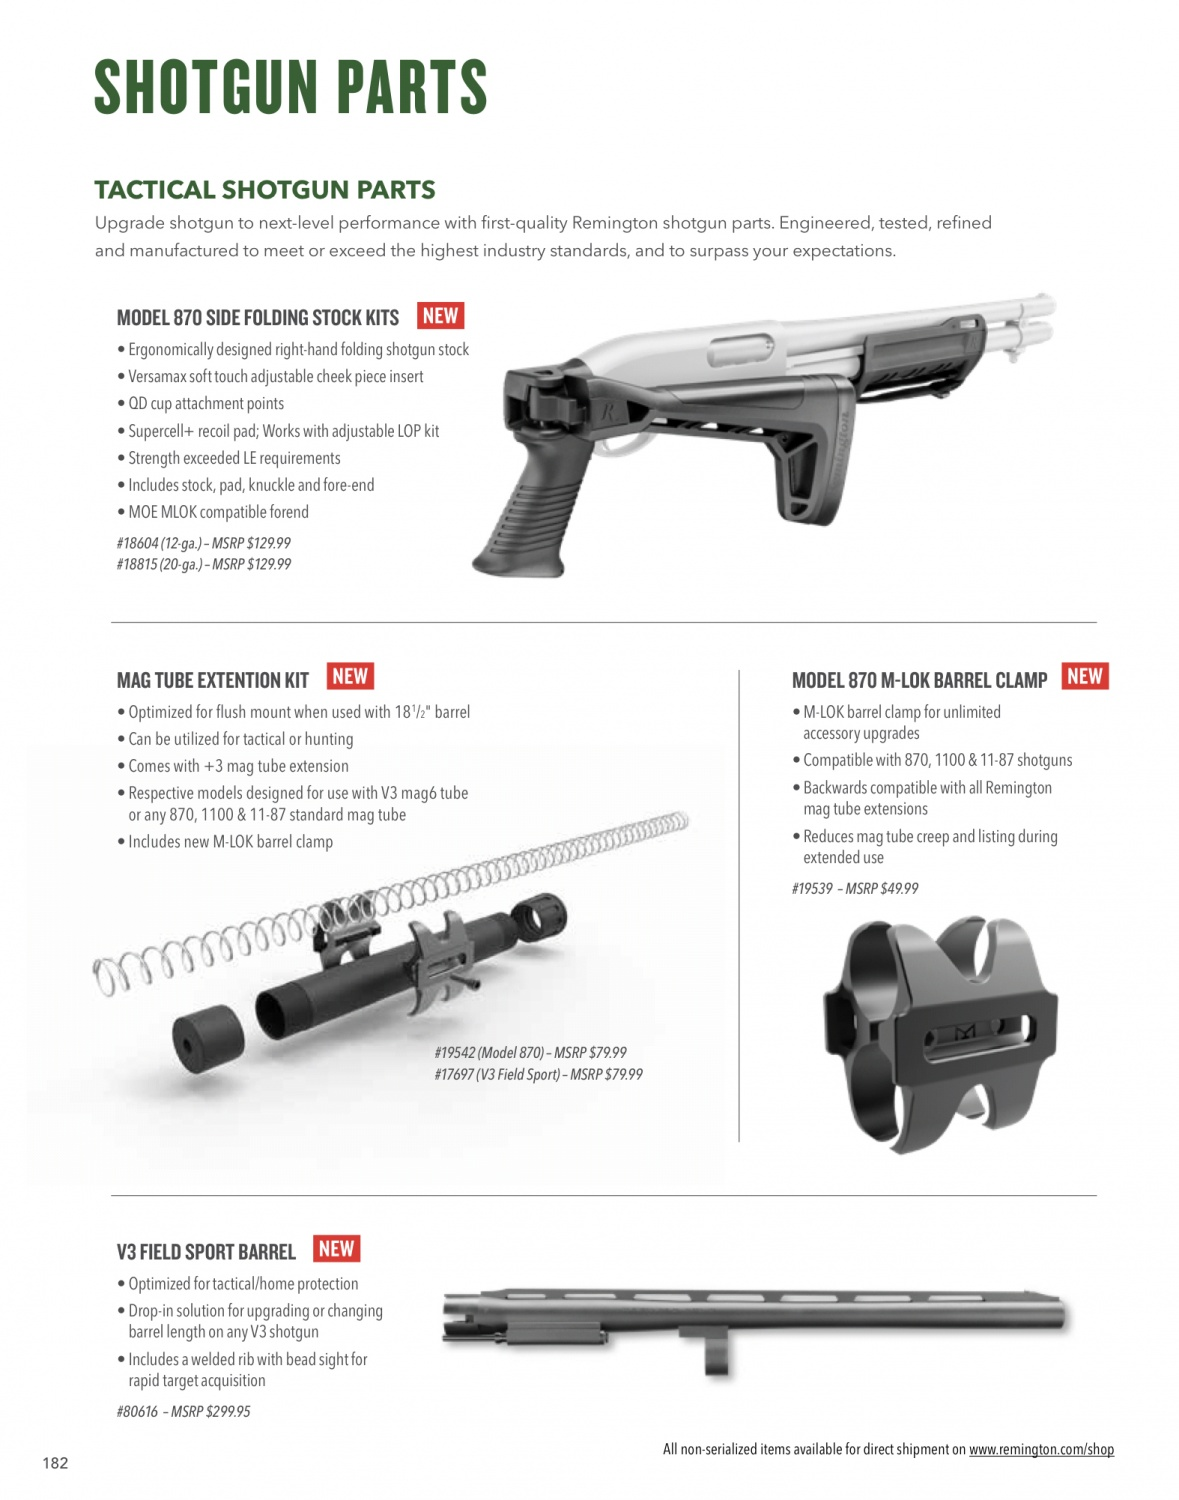 JUST RELEASED: 2019 Remington And AAC Product Catalogs -The